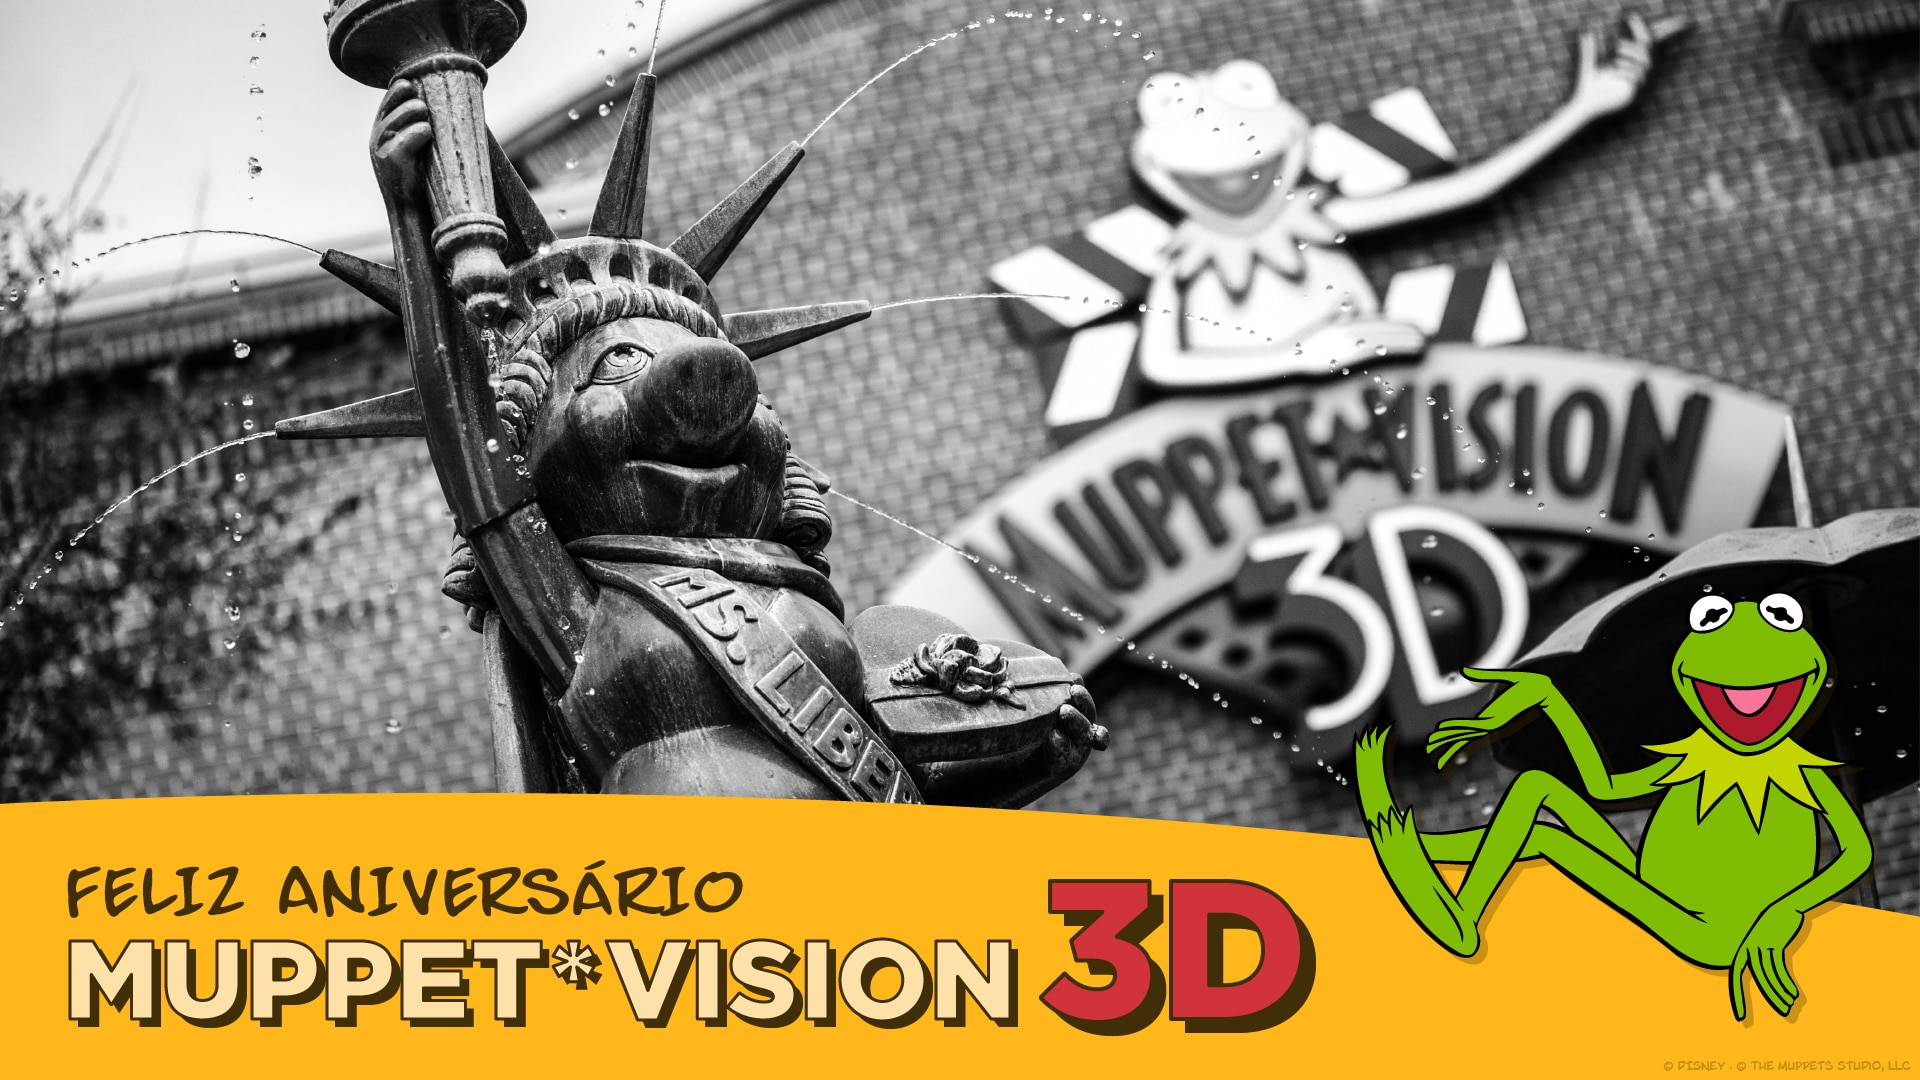 O aniversário do Muppet*Vision 3D no Disney's Hollywood Studios!